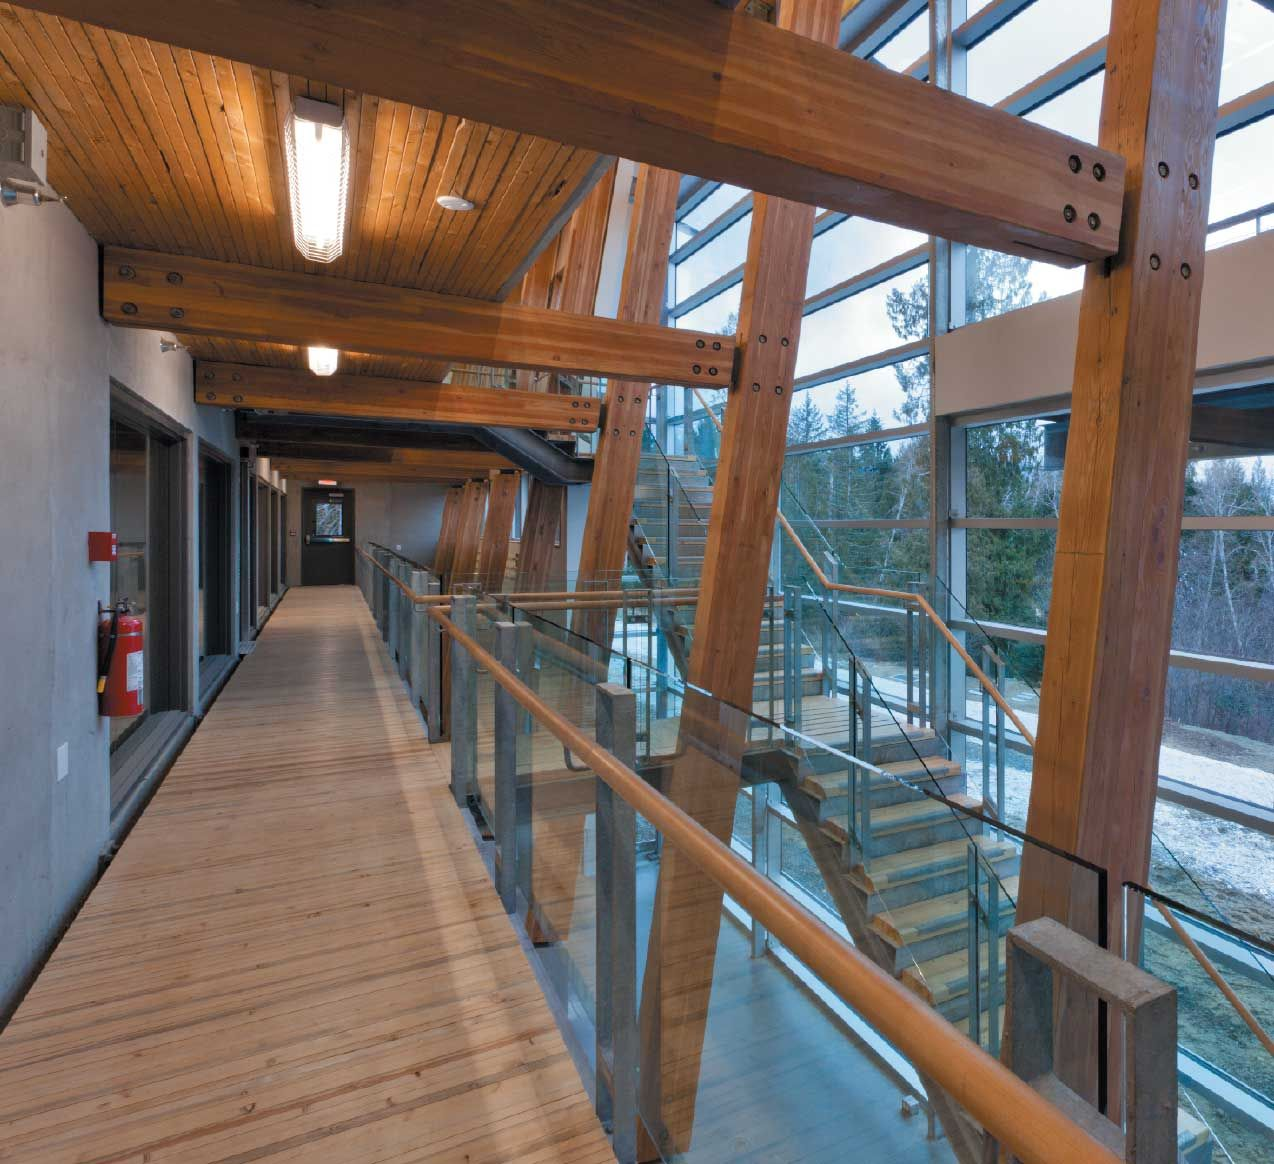 VIU Deep Bay Marine Field Station | McFarland Marceau Architects    The wood structure gives the building its defining material character. Mezzanine walkways give visitors views down to the research floor.